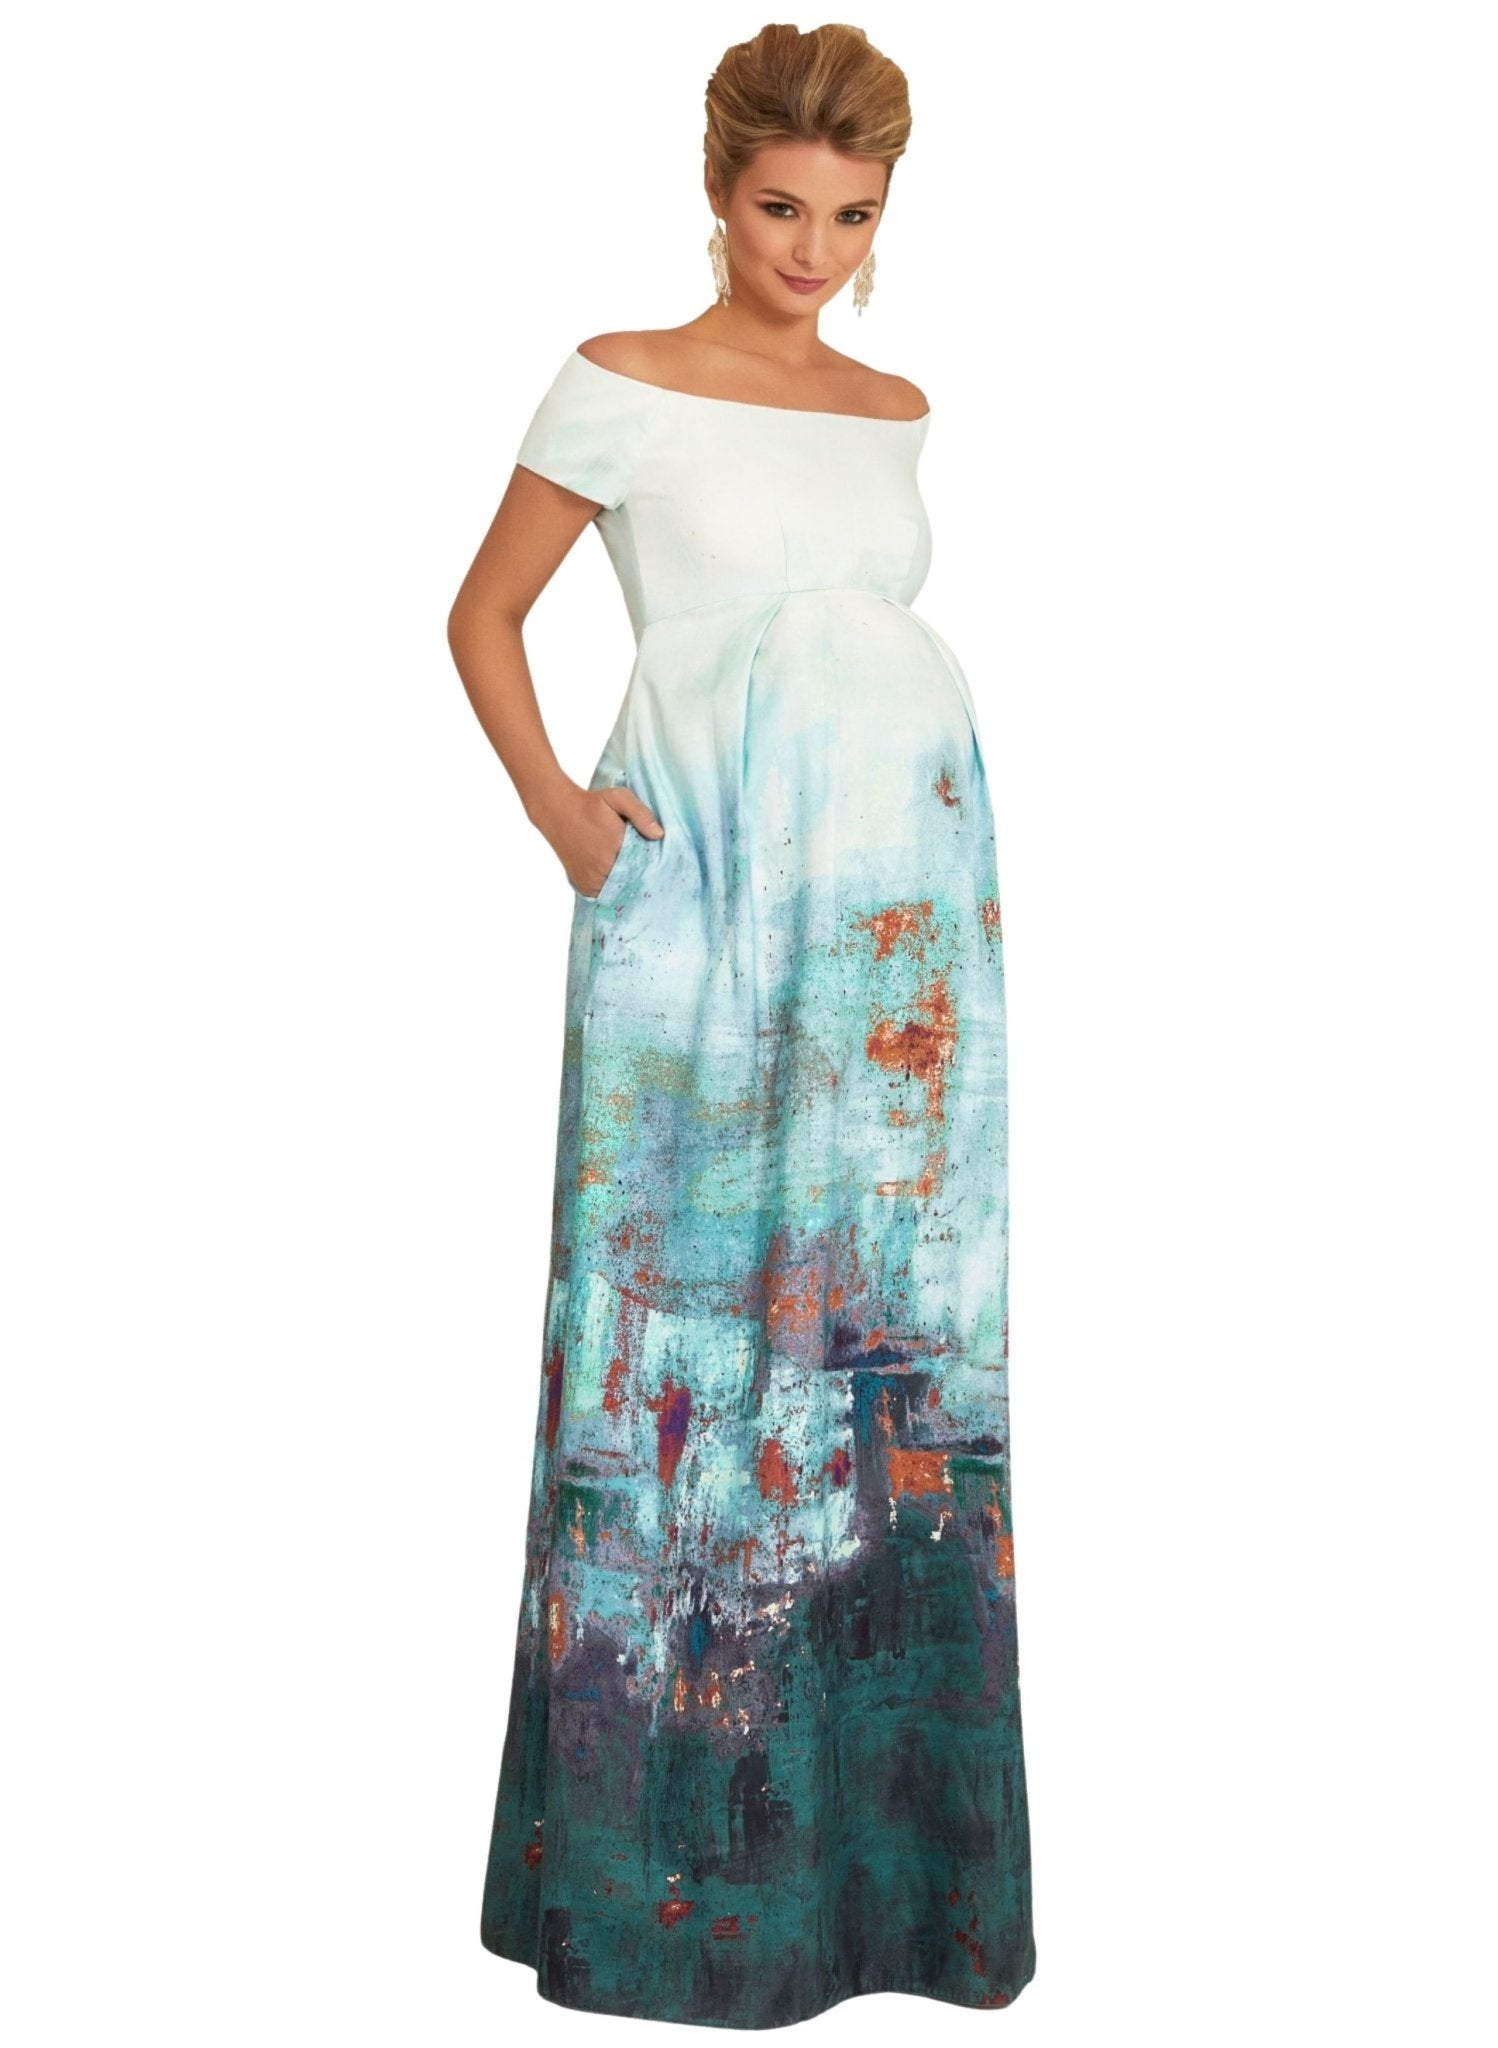 Aria Maternity Gown - Aquatic Ombre - Mums and Bumps